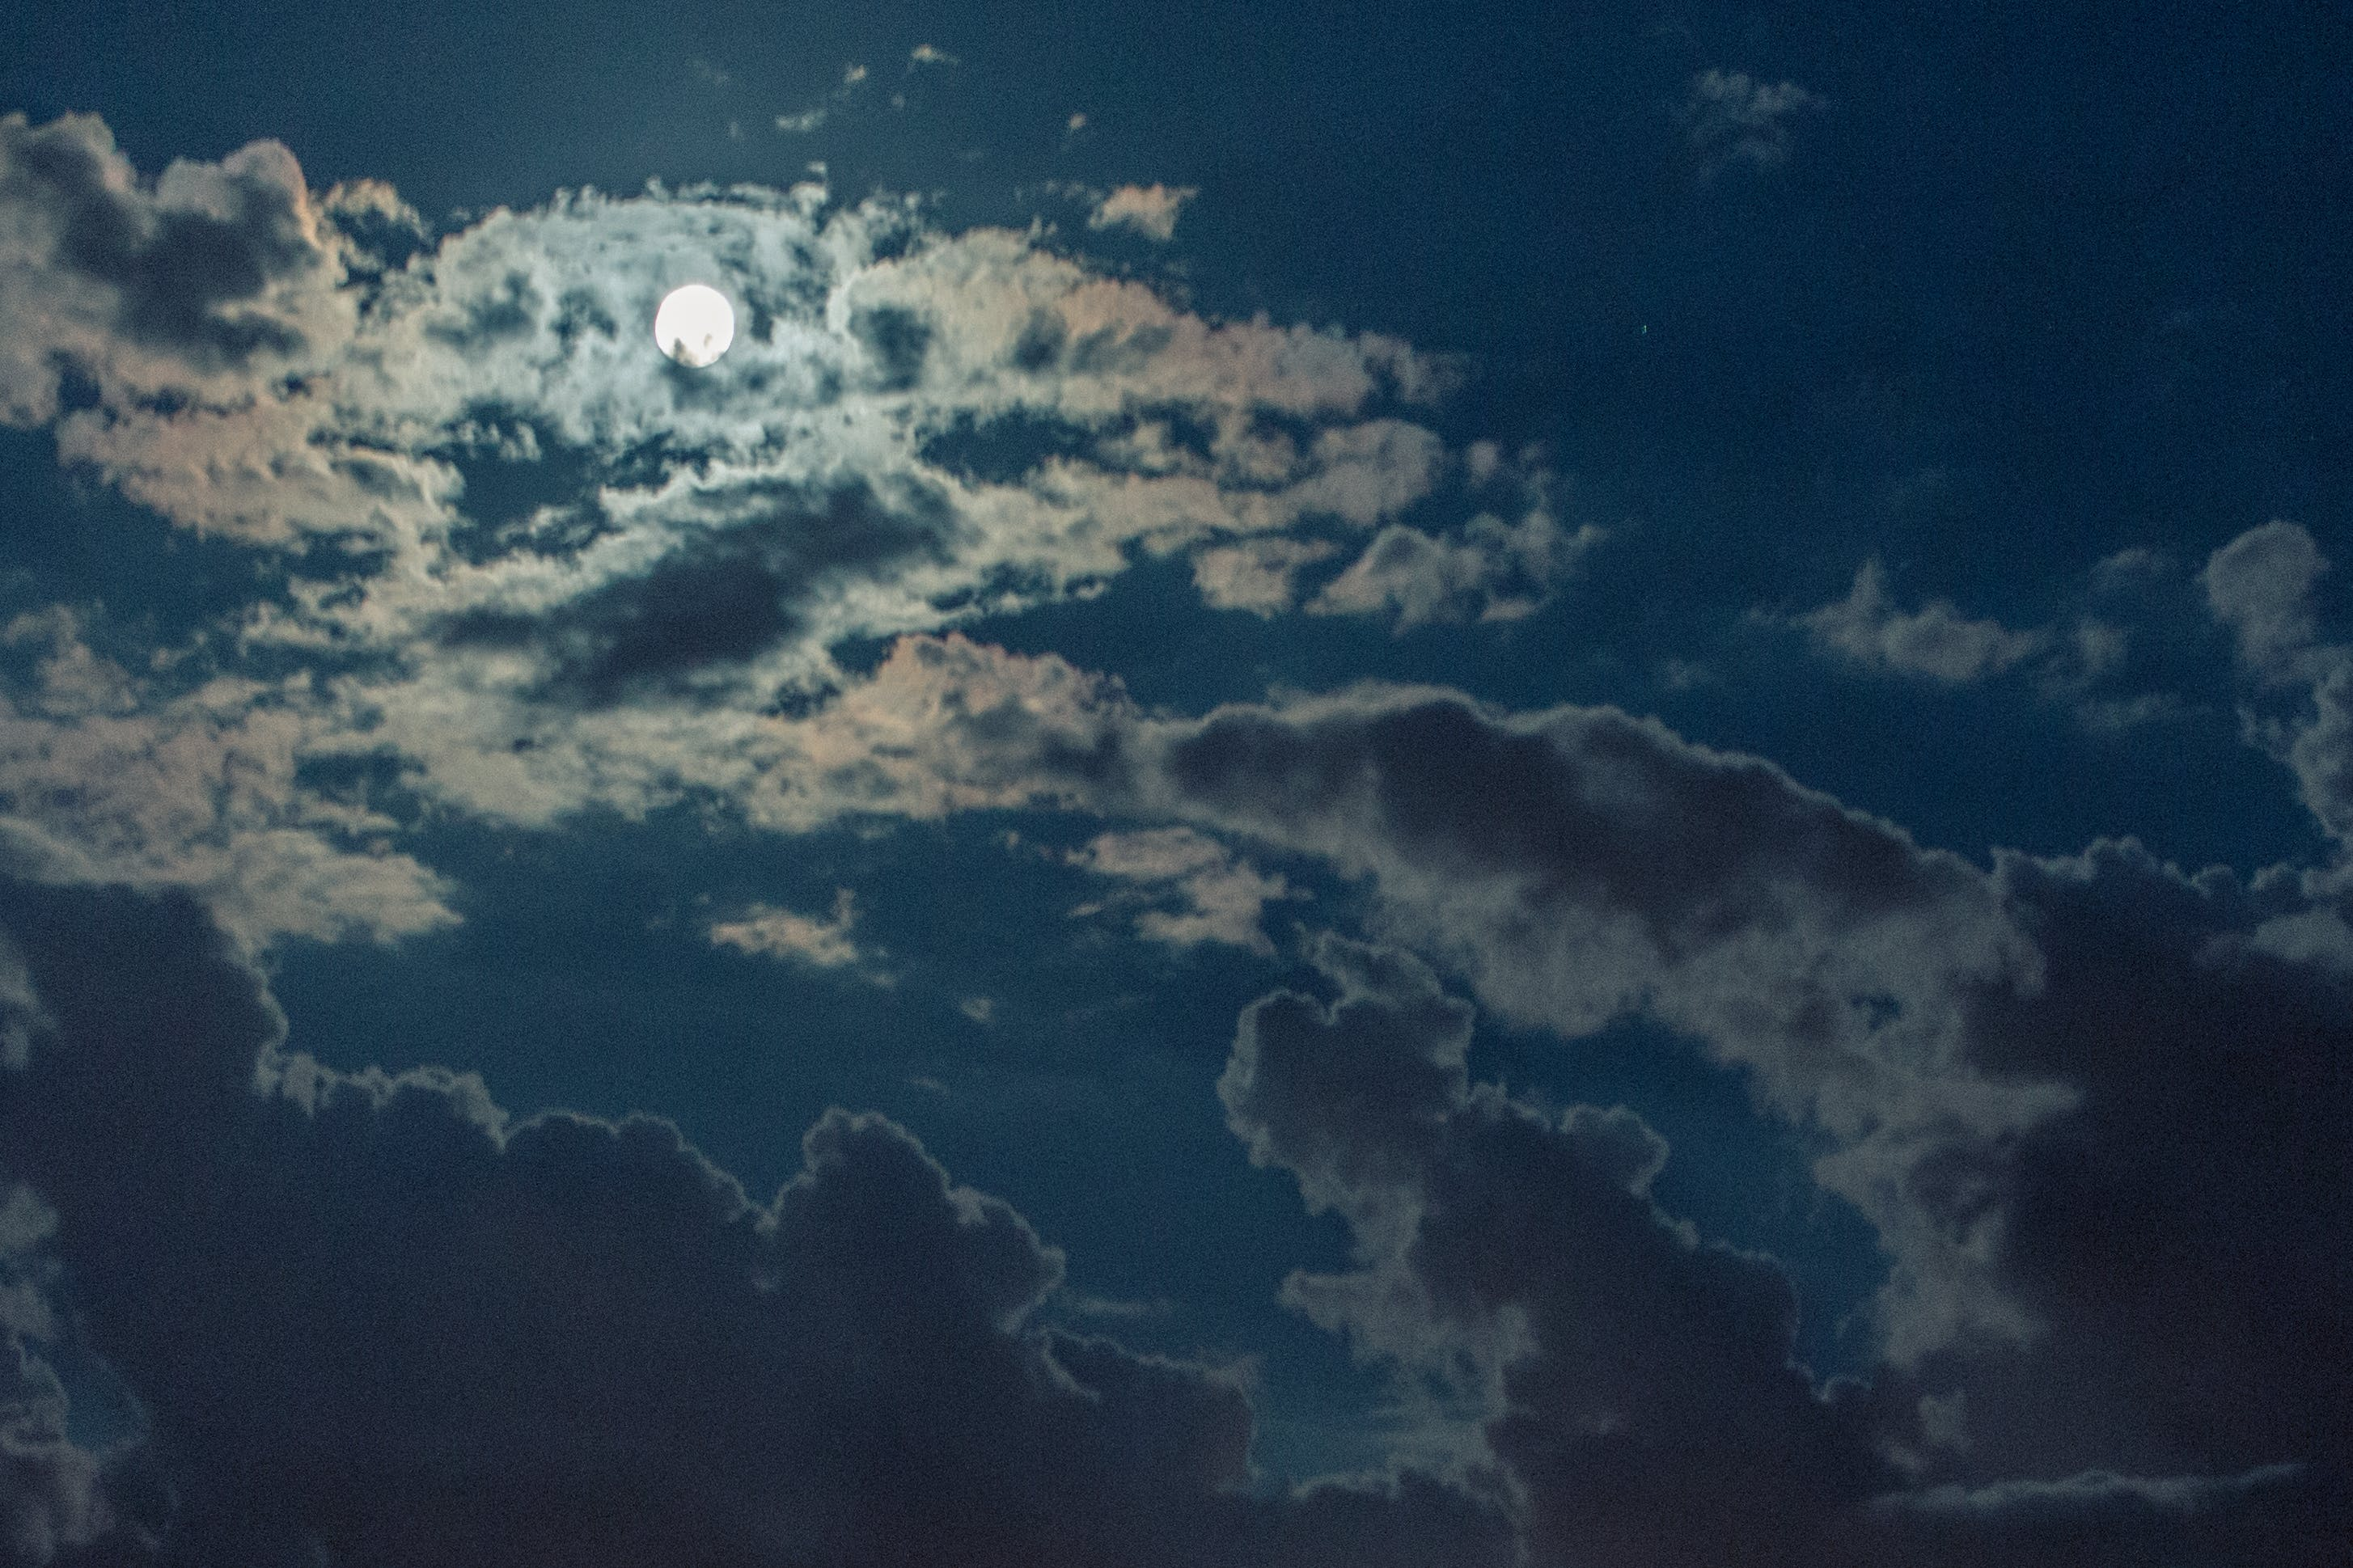 Free stock photo of light, sky, night, clouds